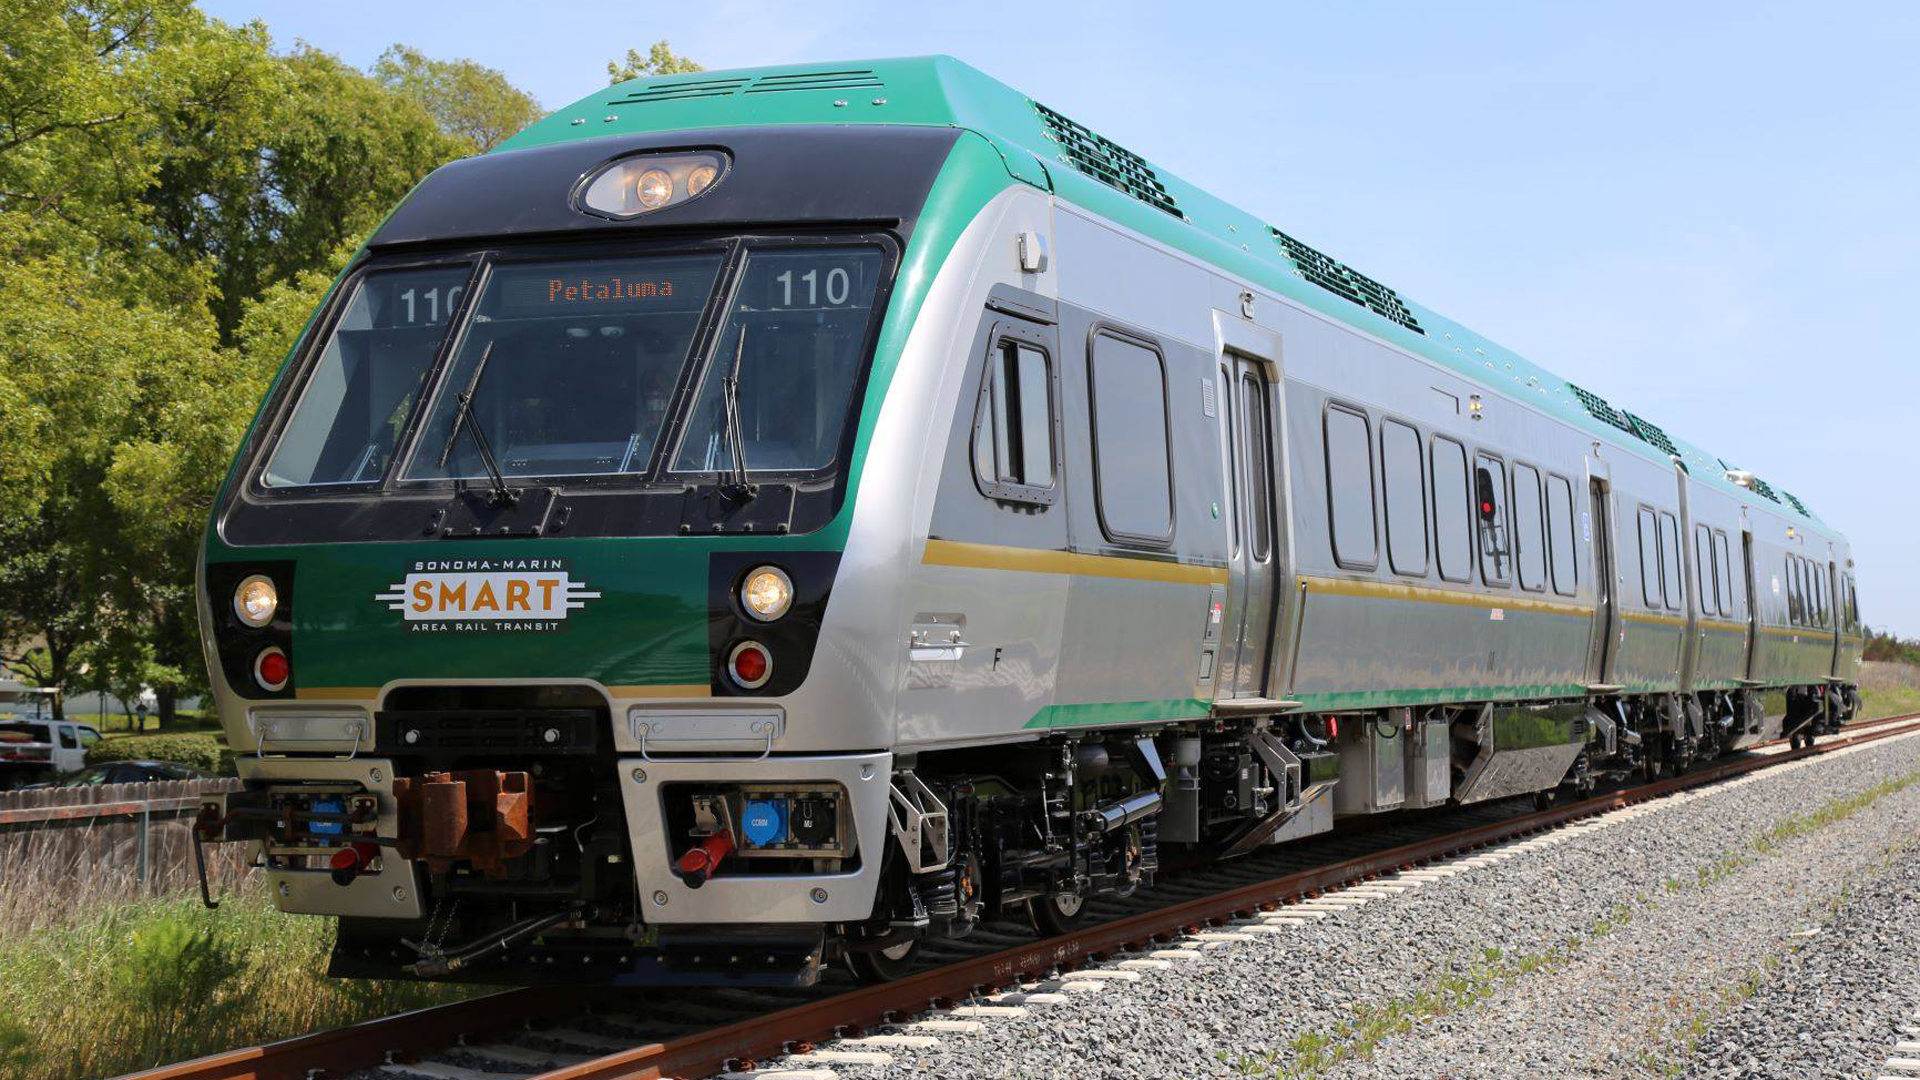 A SMART train is seen in a photo posted to the Sonoma-Marin Area Rail Transit's Facebook page.